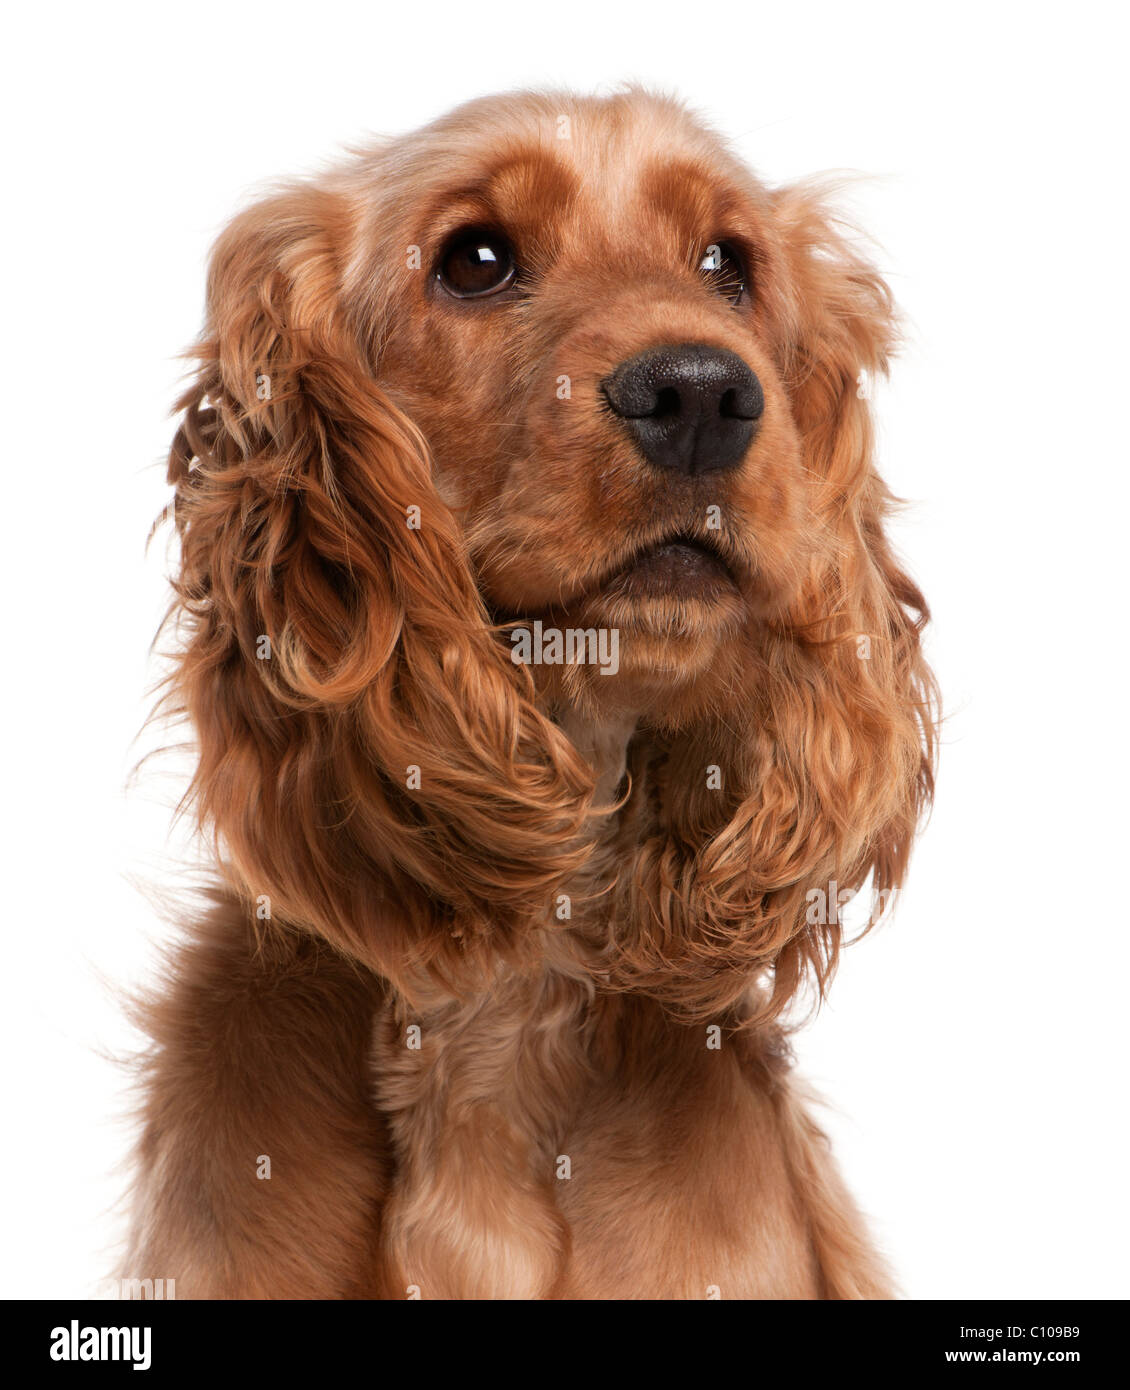 English Cocker Spaniel, 2 years old, in front of white background - Stock Image